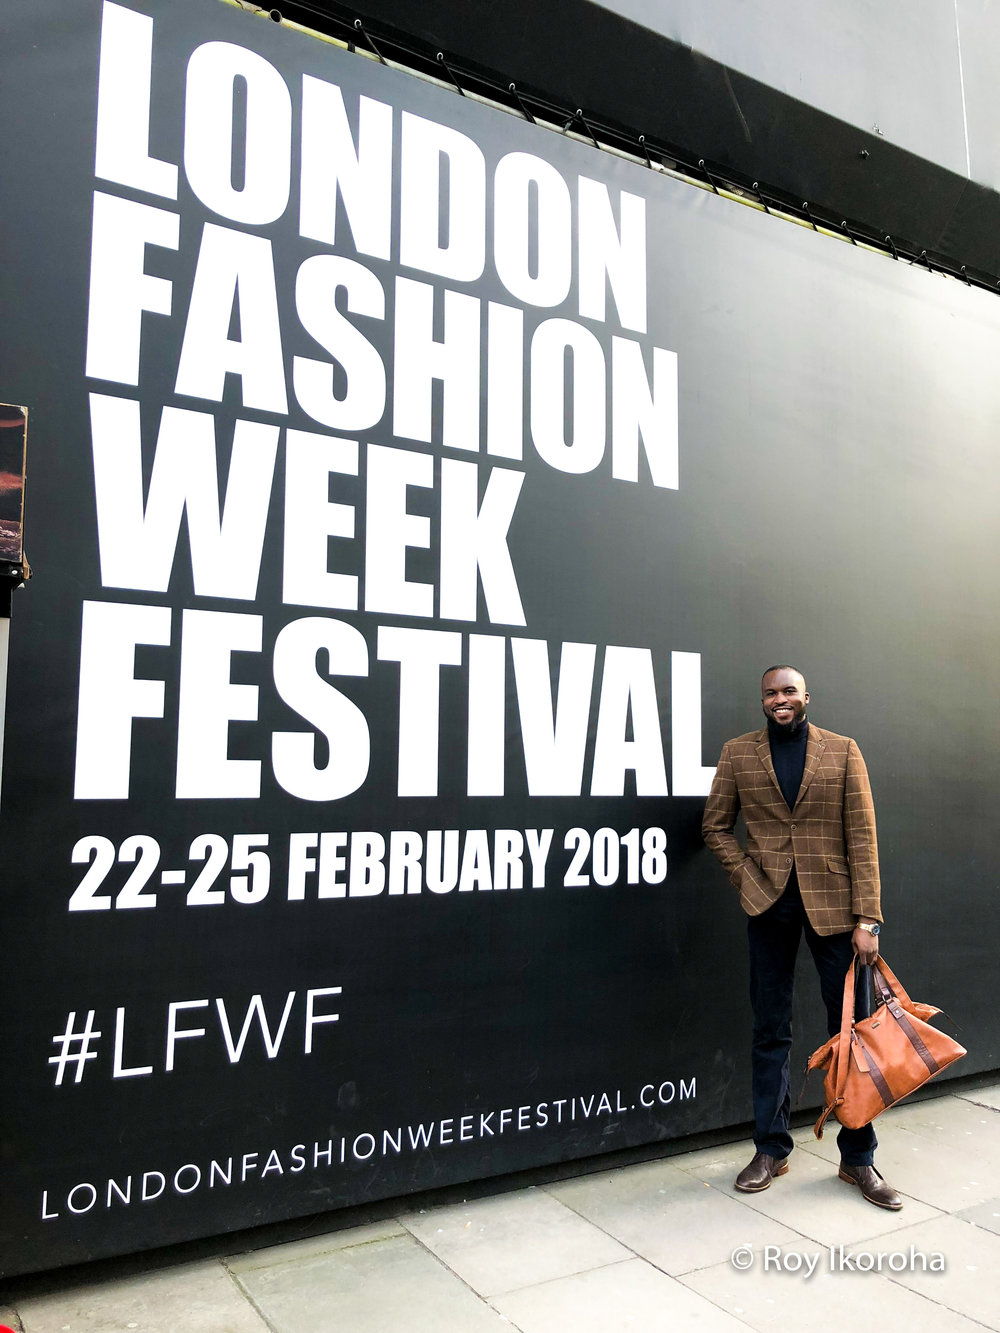 Arriving at London Fashion Week Festival 2018, The Store Studios, Strand, London (central)